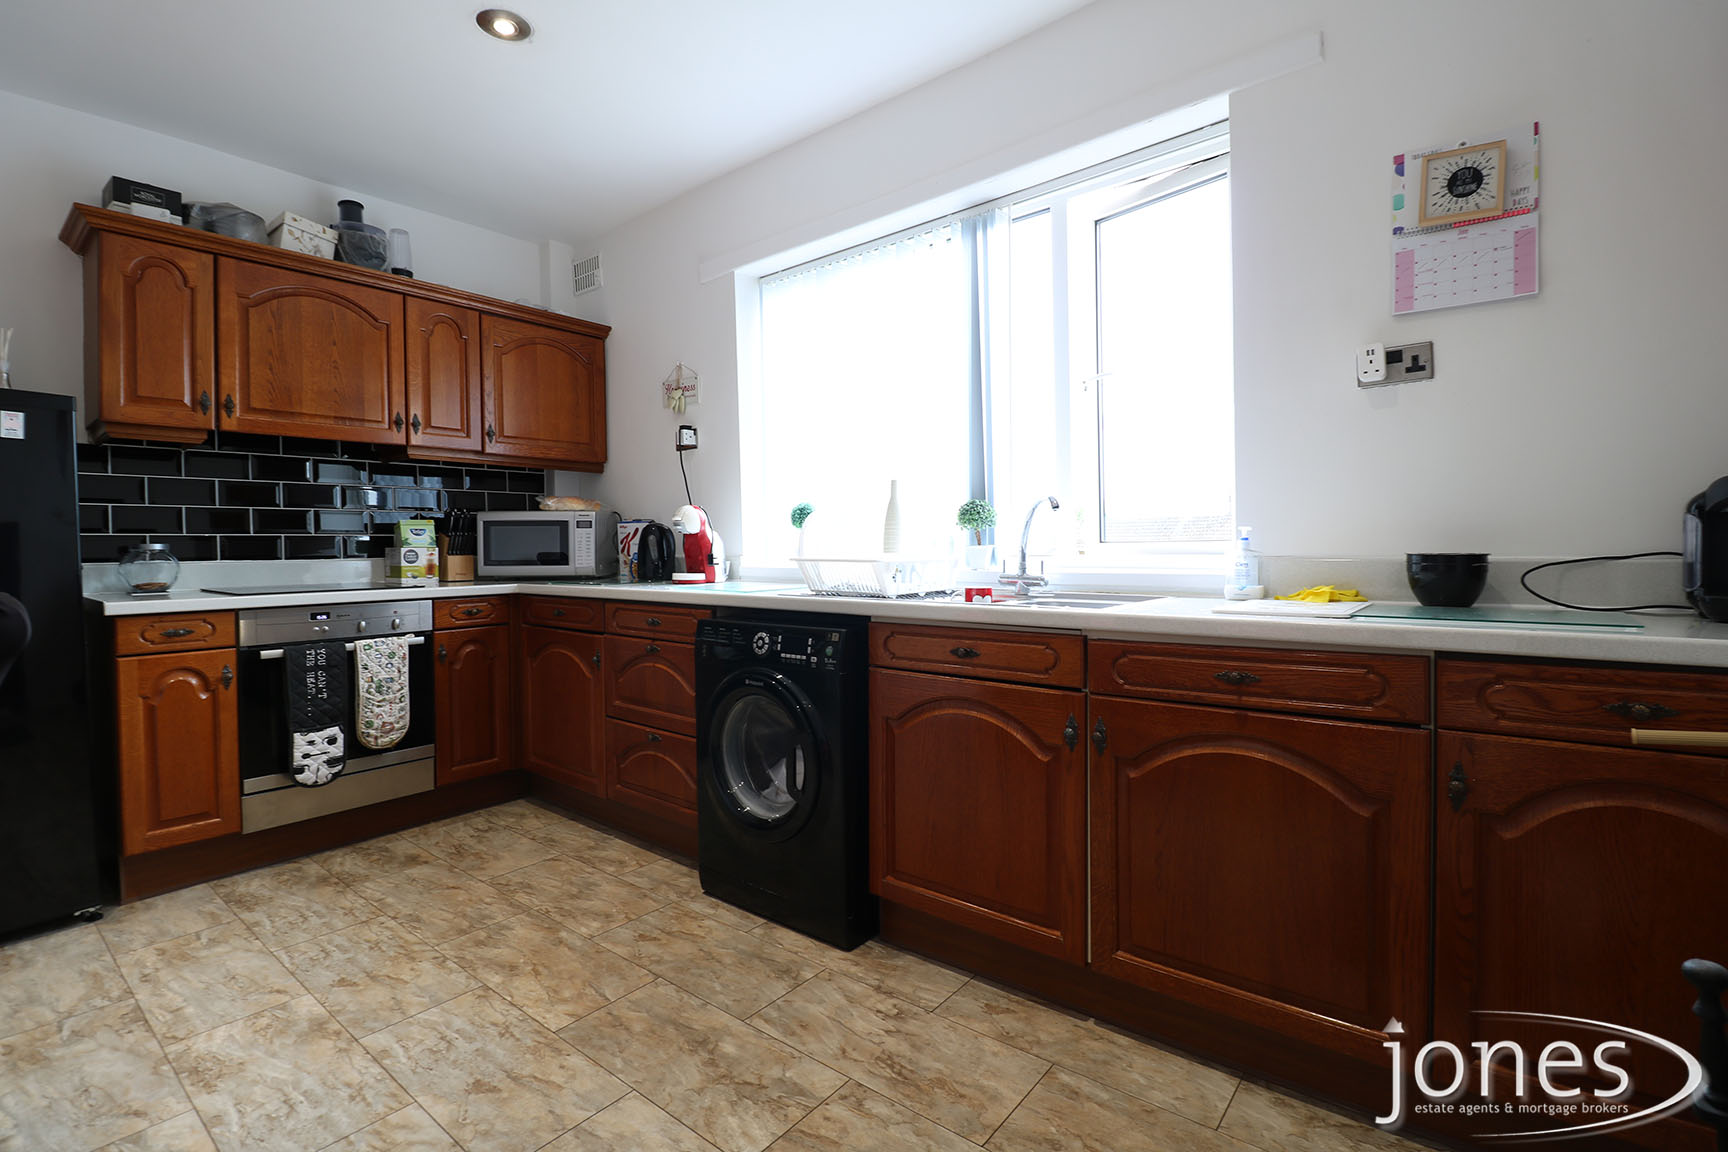 Home for Sale Let - Photo 03 Mill Crescent, Whitwell, Worksop, S80 4SF